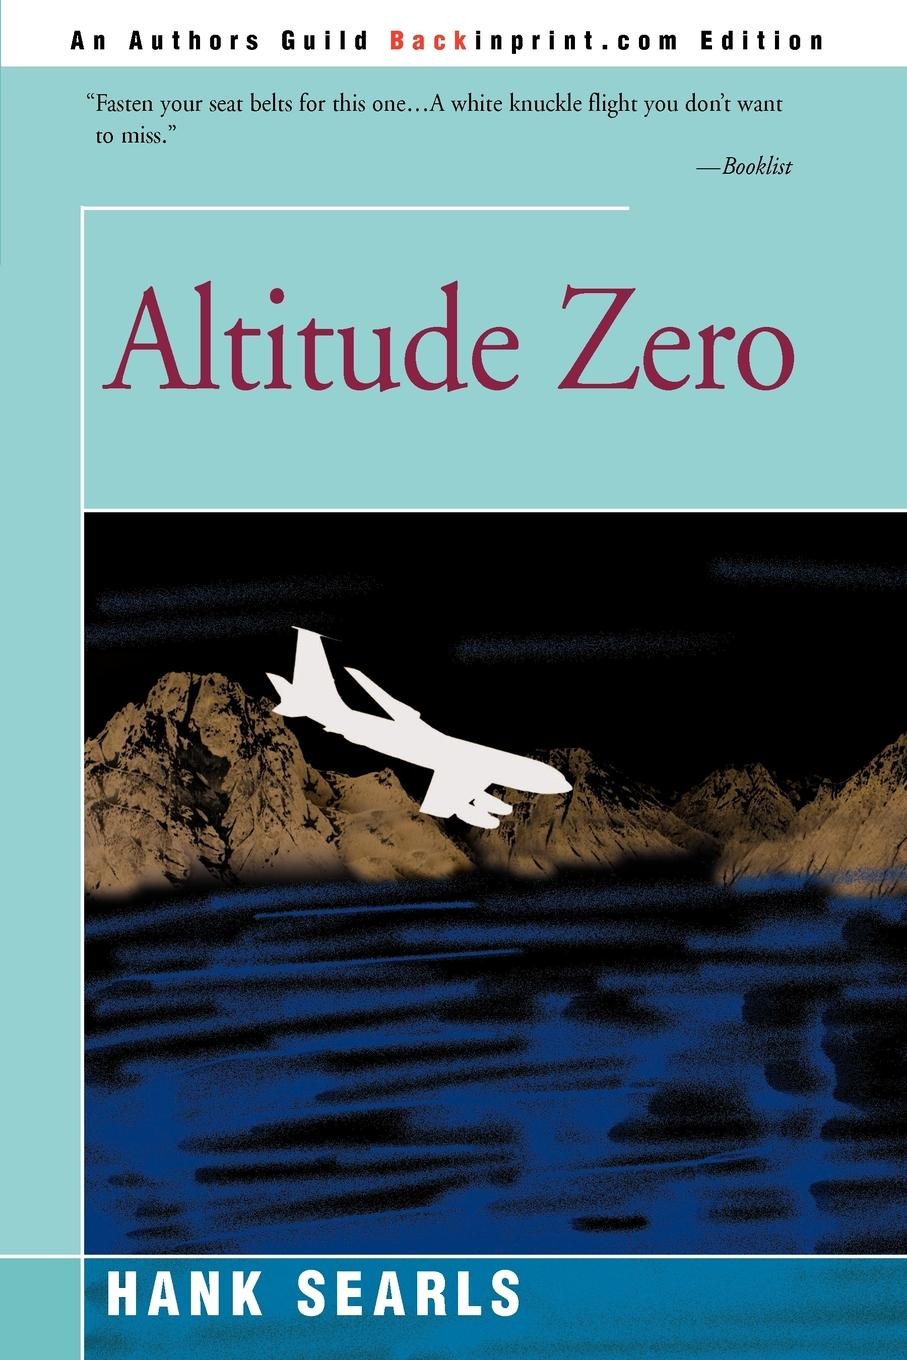 Hank Searls Altitude Zero